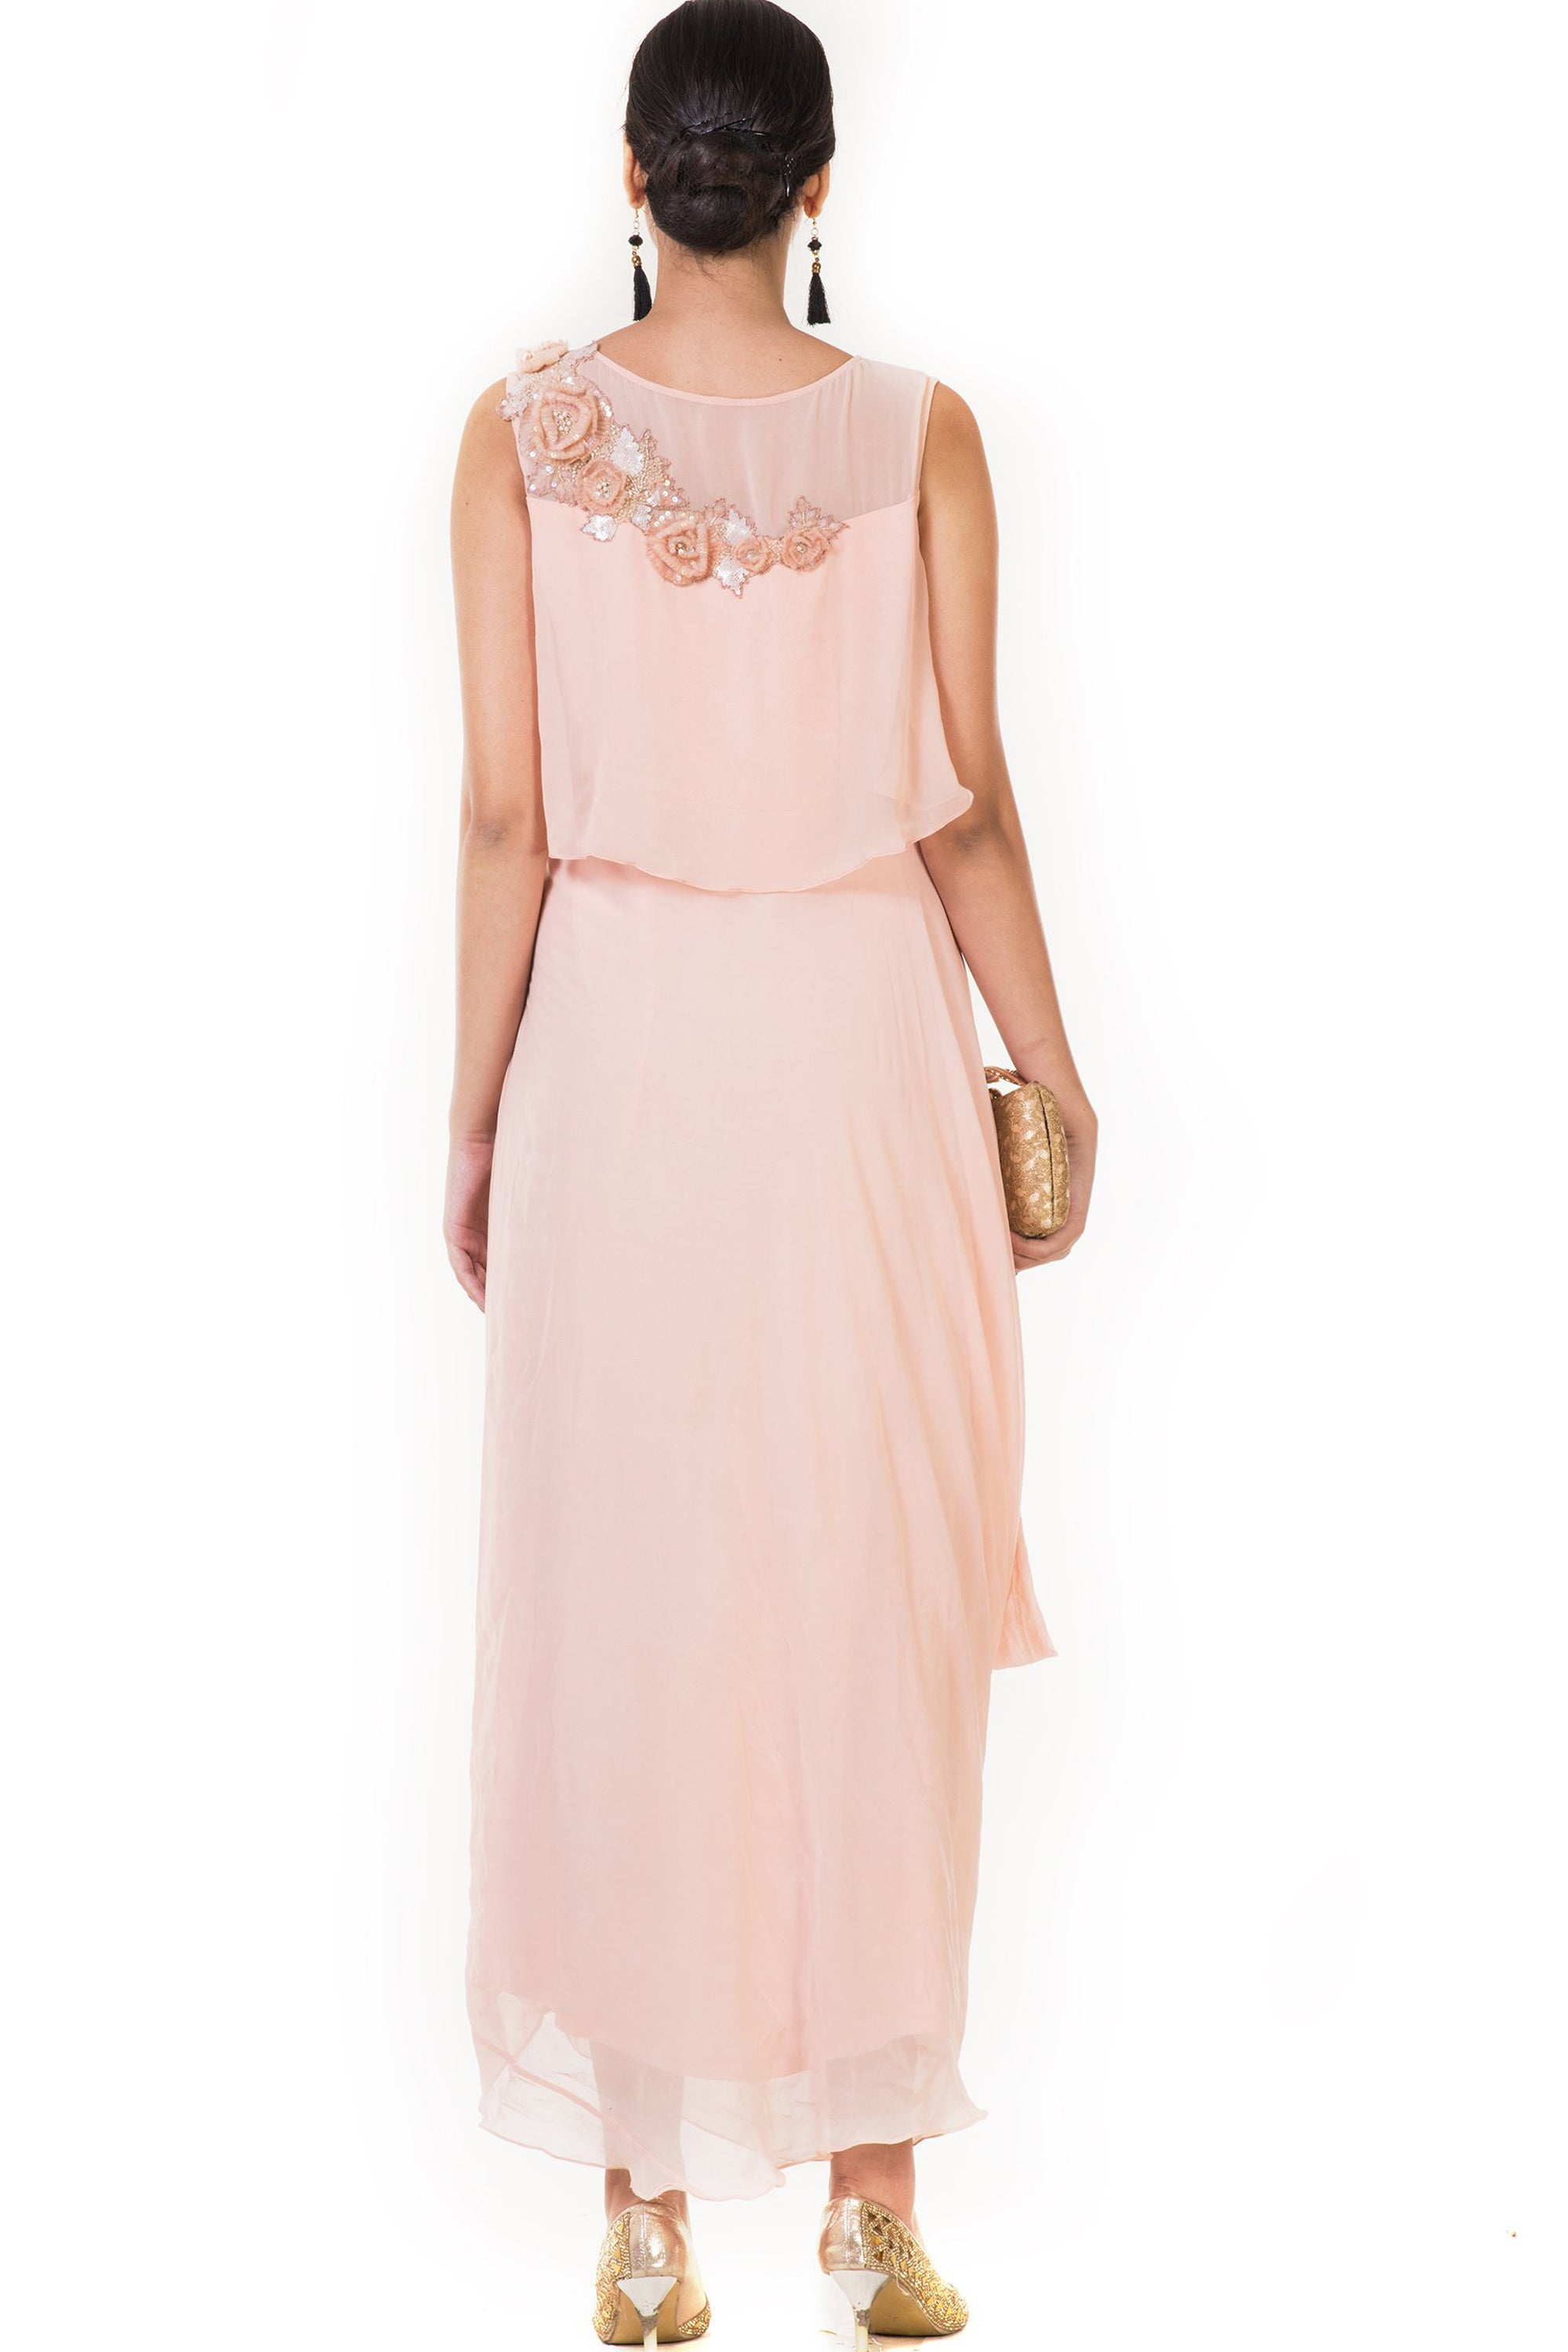 Embroidered Peach Drape Style Cape Gown Back